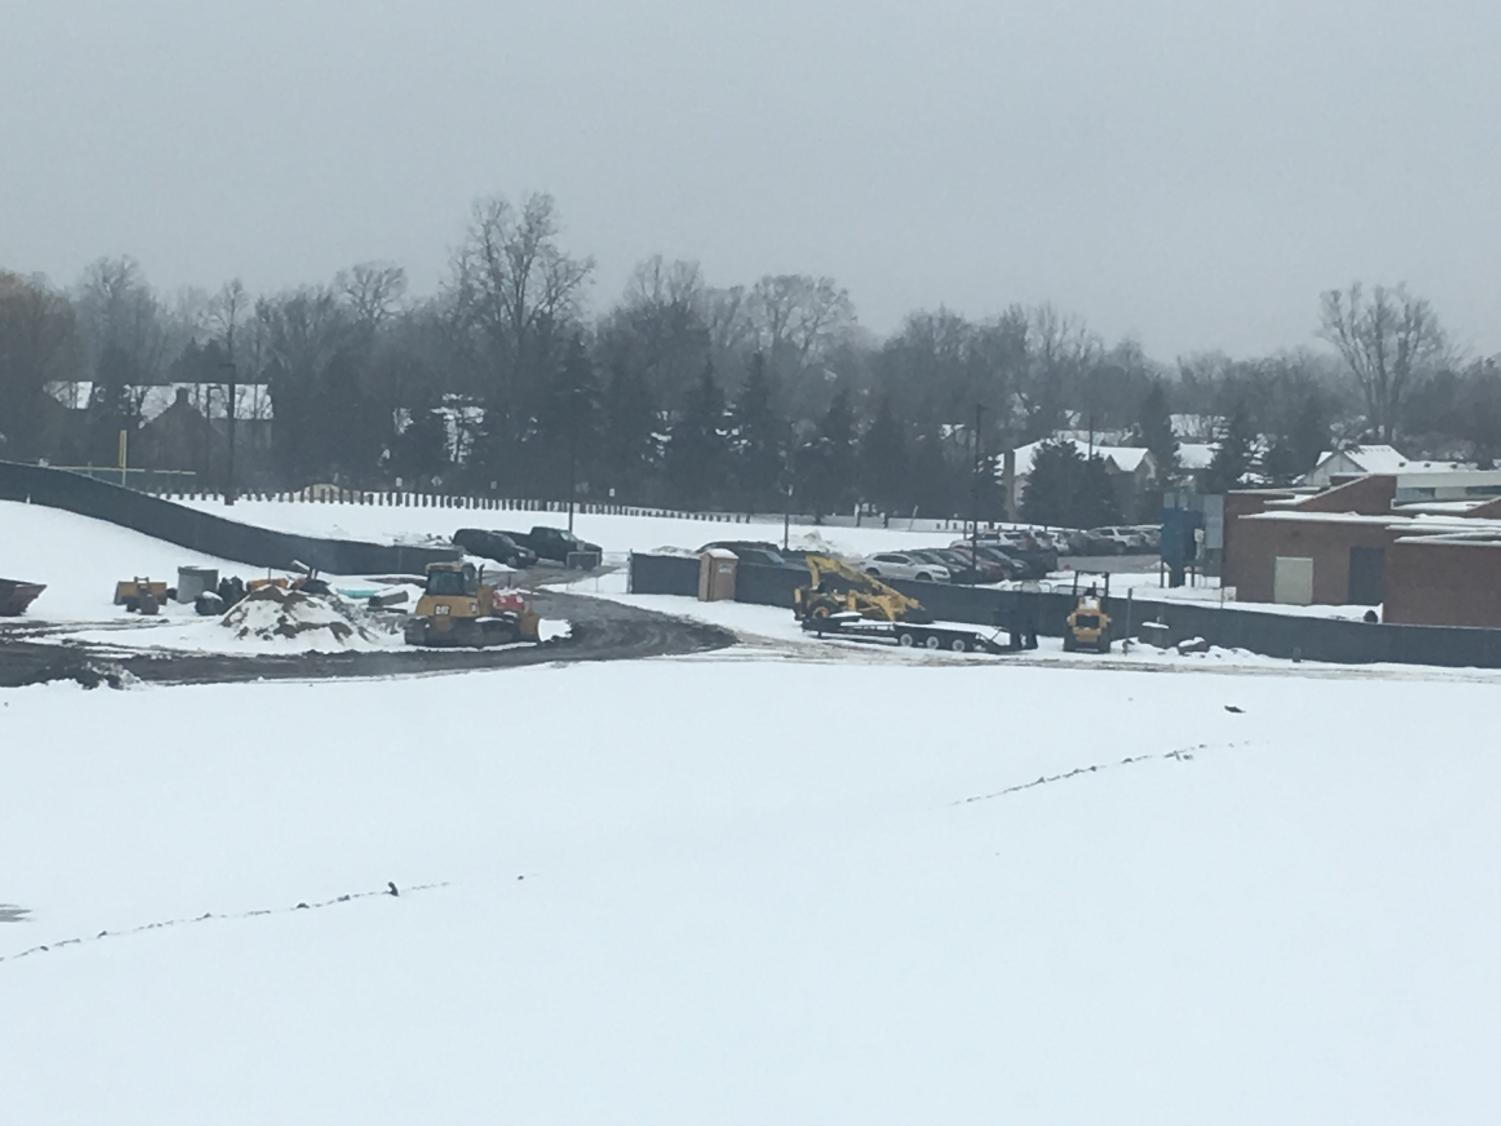 Construction continues around the Adams grounds including the location of the old baseball field.